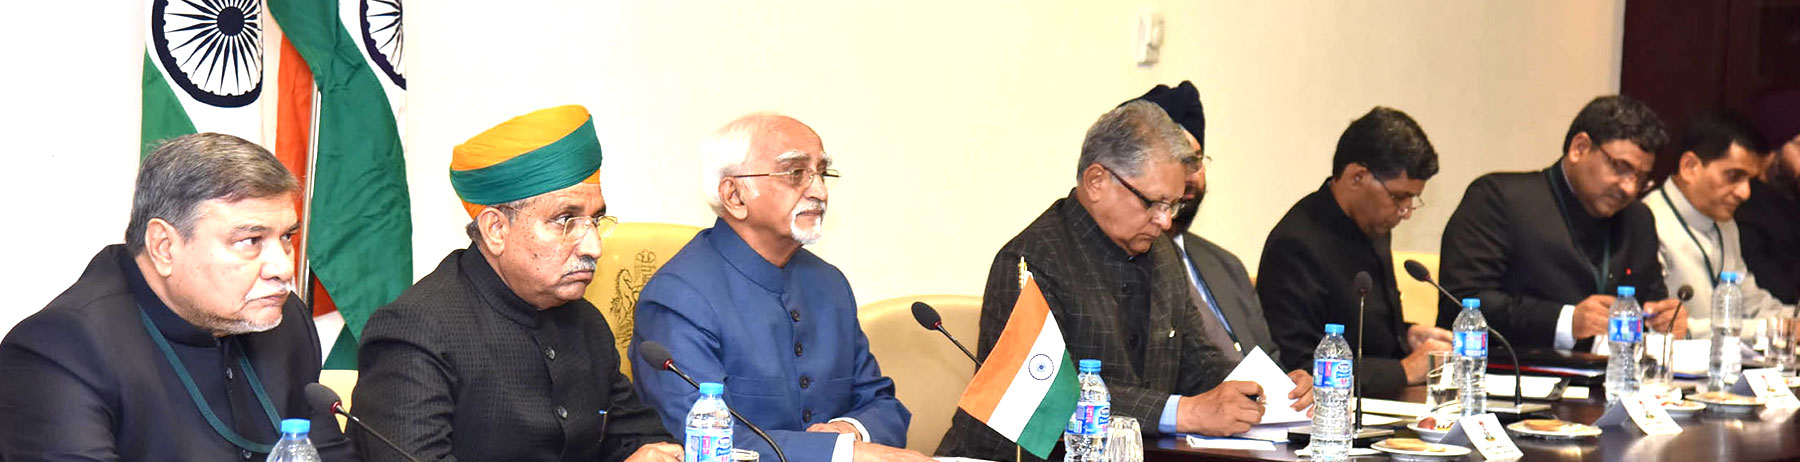 The Vice President, Shri M. Hamid Ansari at the delegation level talks, at the Vice Presidents Office, in Abuja, Nigeria on September 27, 2016. The Minister of State for Finance and Corporate Affairs, Shri Arjun Ram Meghwal is also seen